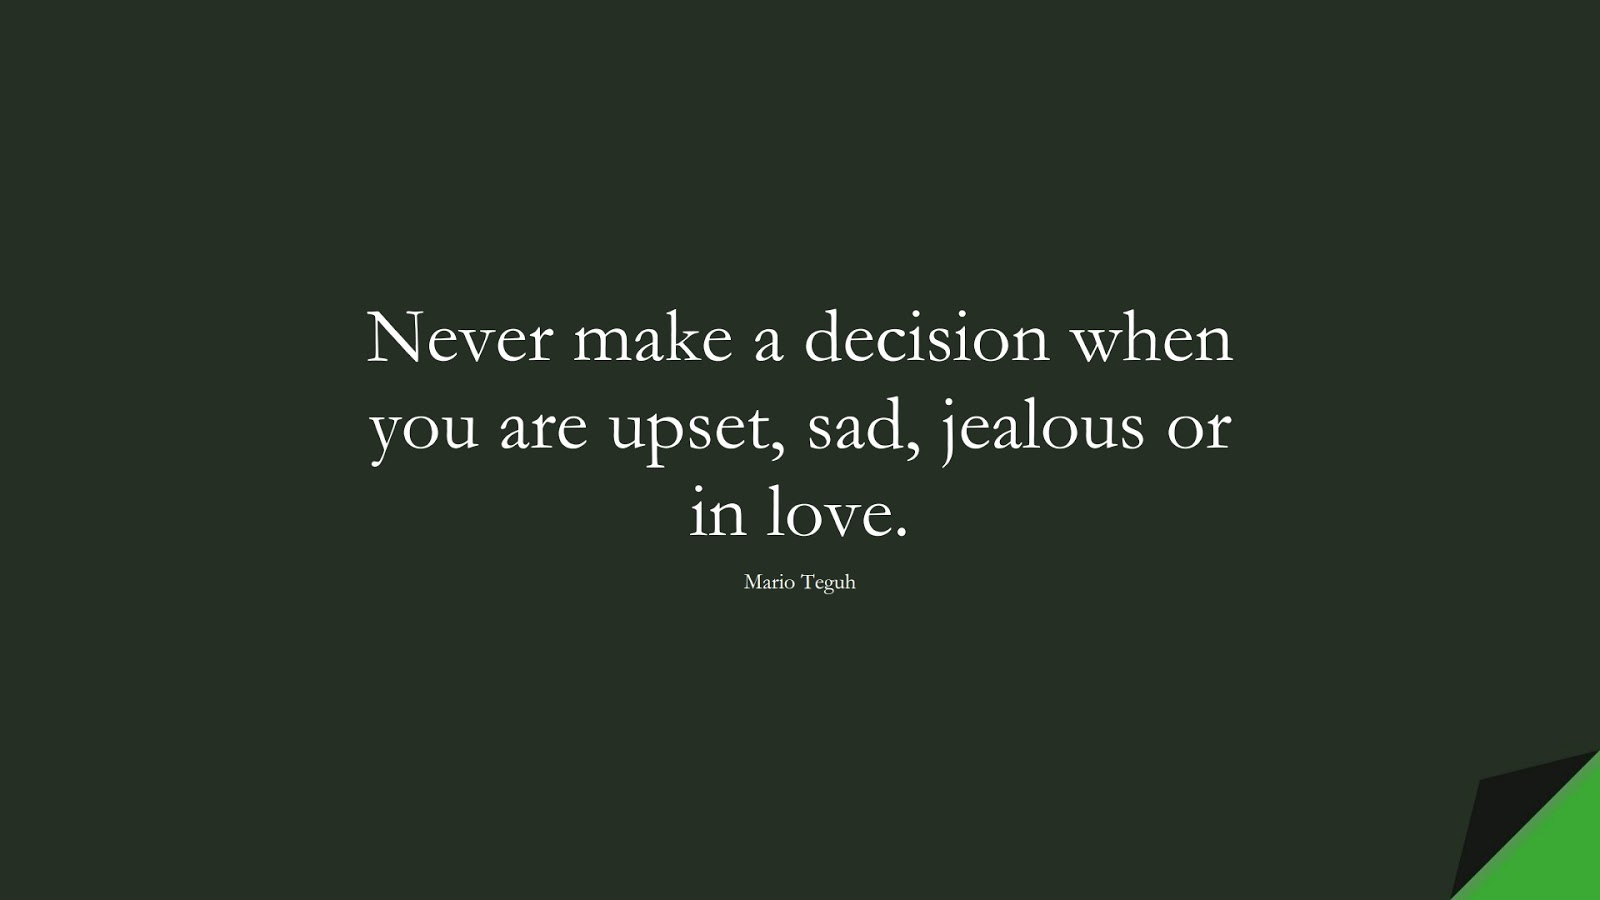 Never make a decision when you are upset, sad, jealous or in love. (Mario Teguh);  #SadLoveQuotes